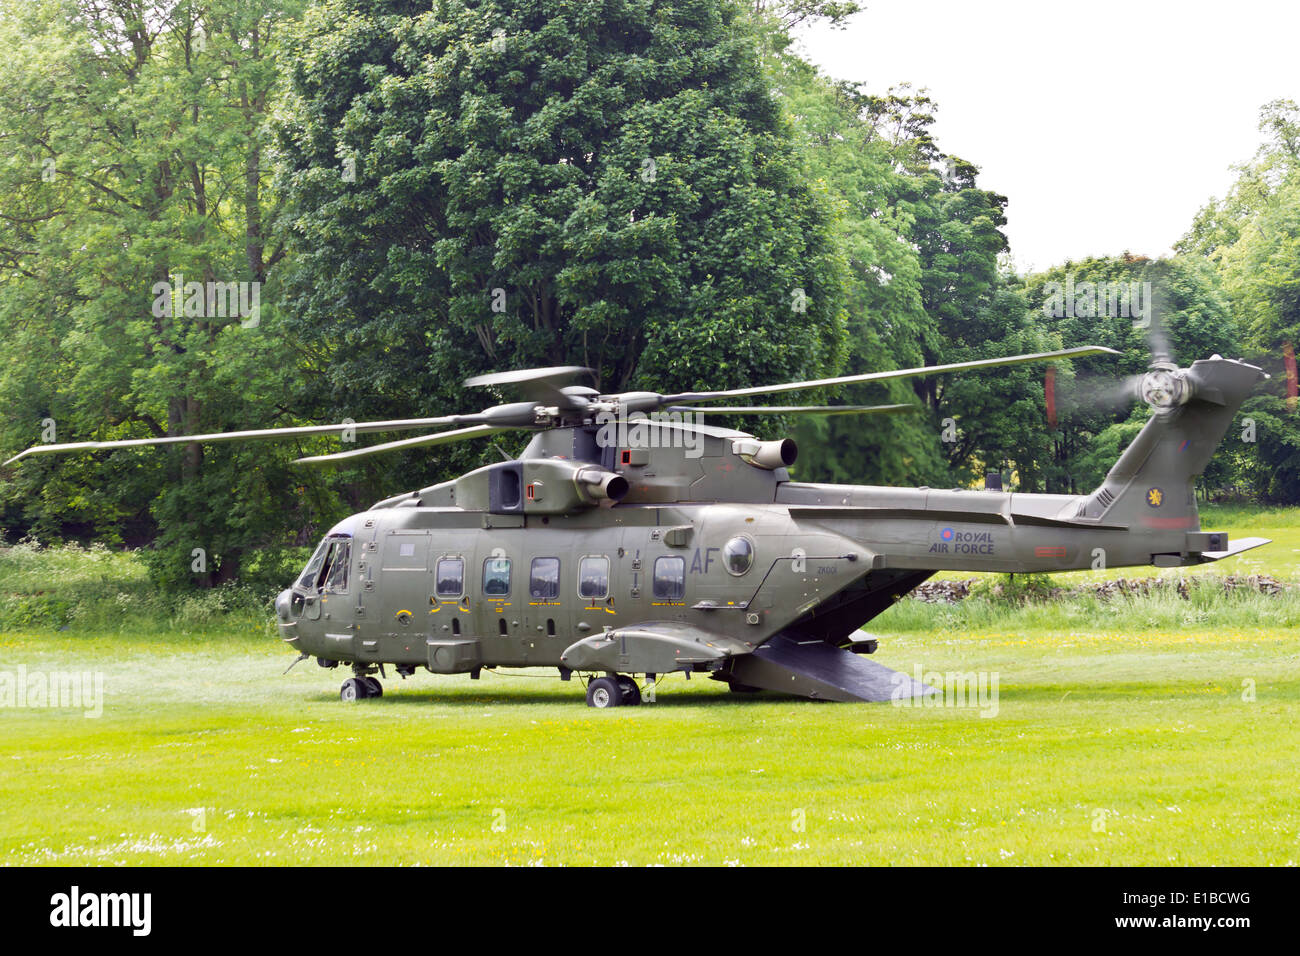 British Army helicopter landed in a countryside. Stock Photo